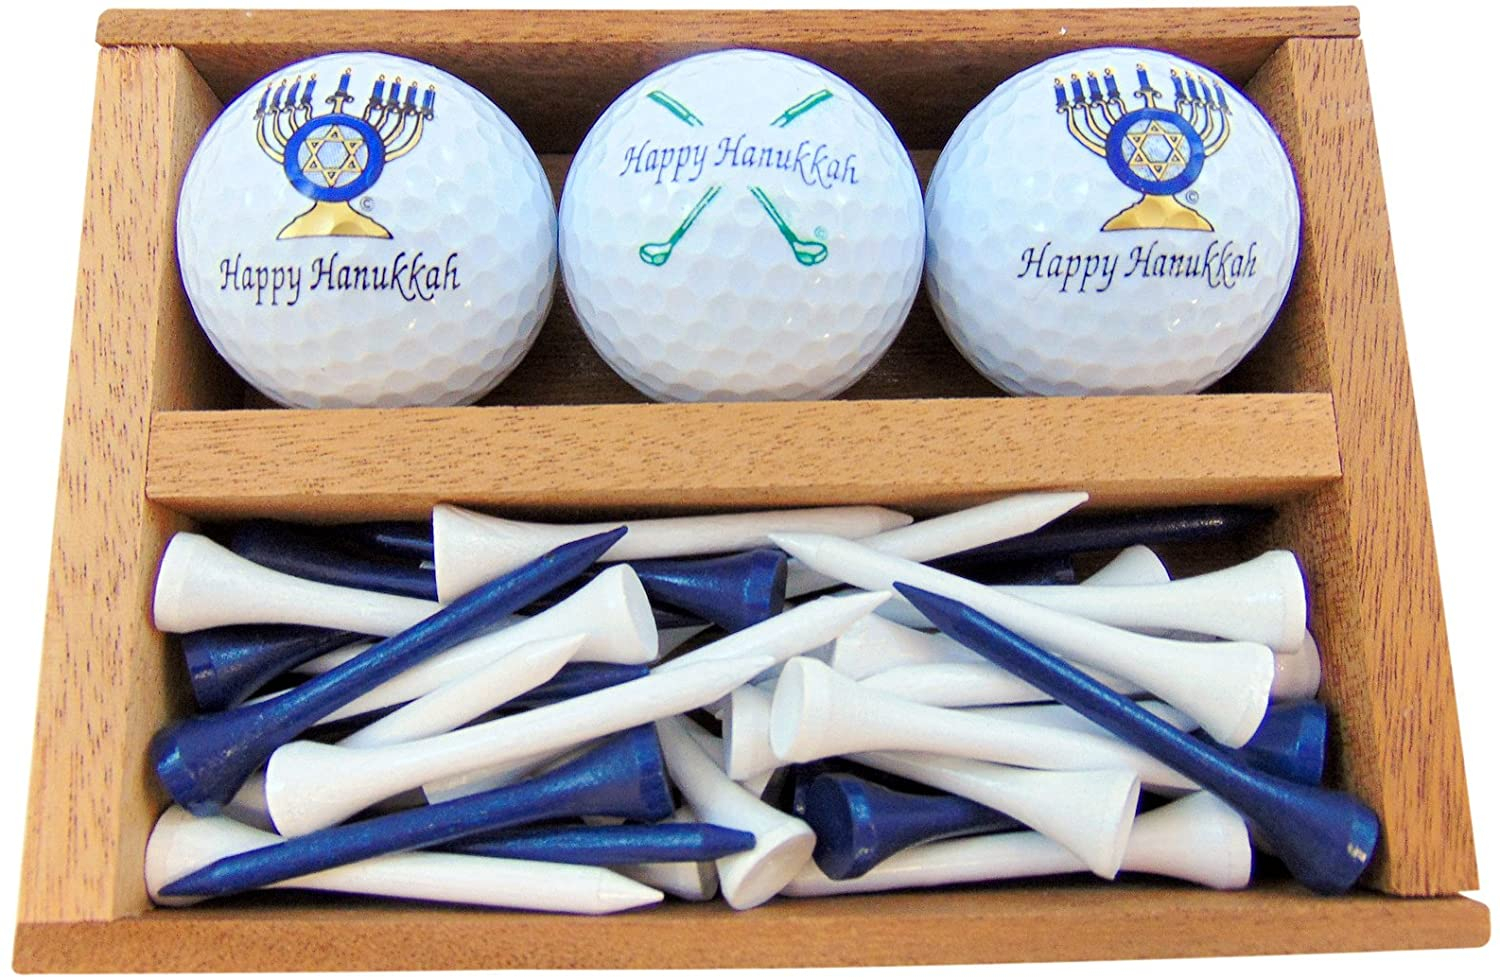 Primary image for Westmon Works Happy Hanukkah Golf Gift Set Menorah and Clubs Set of 3 Balls